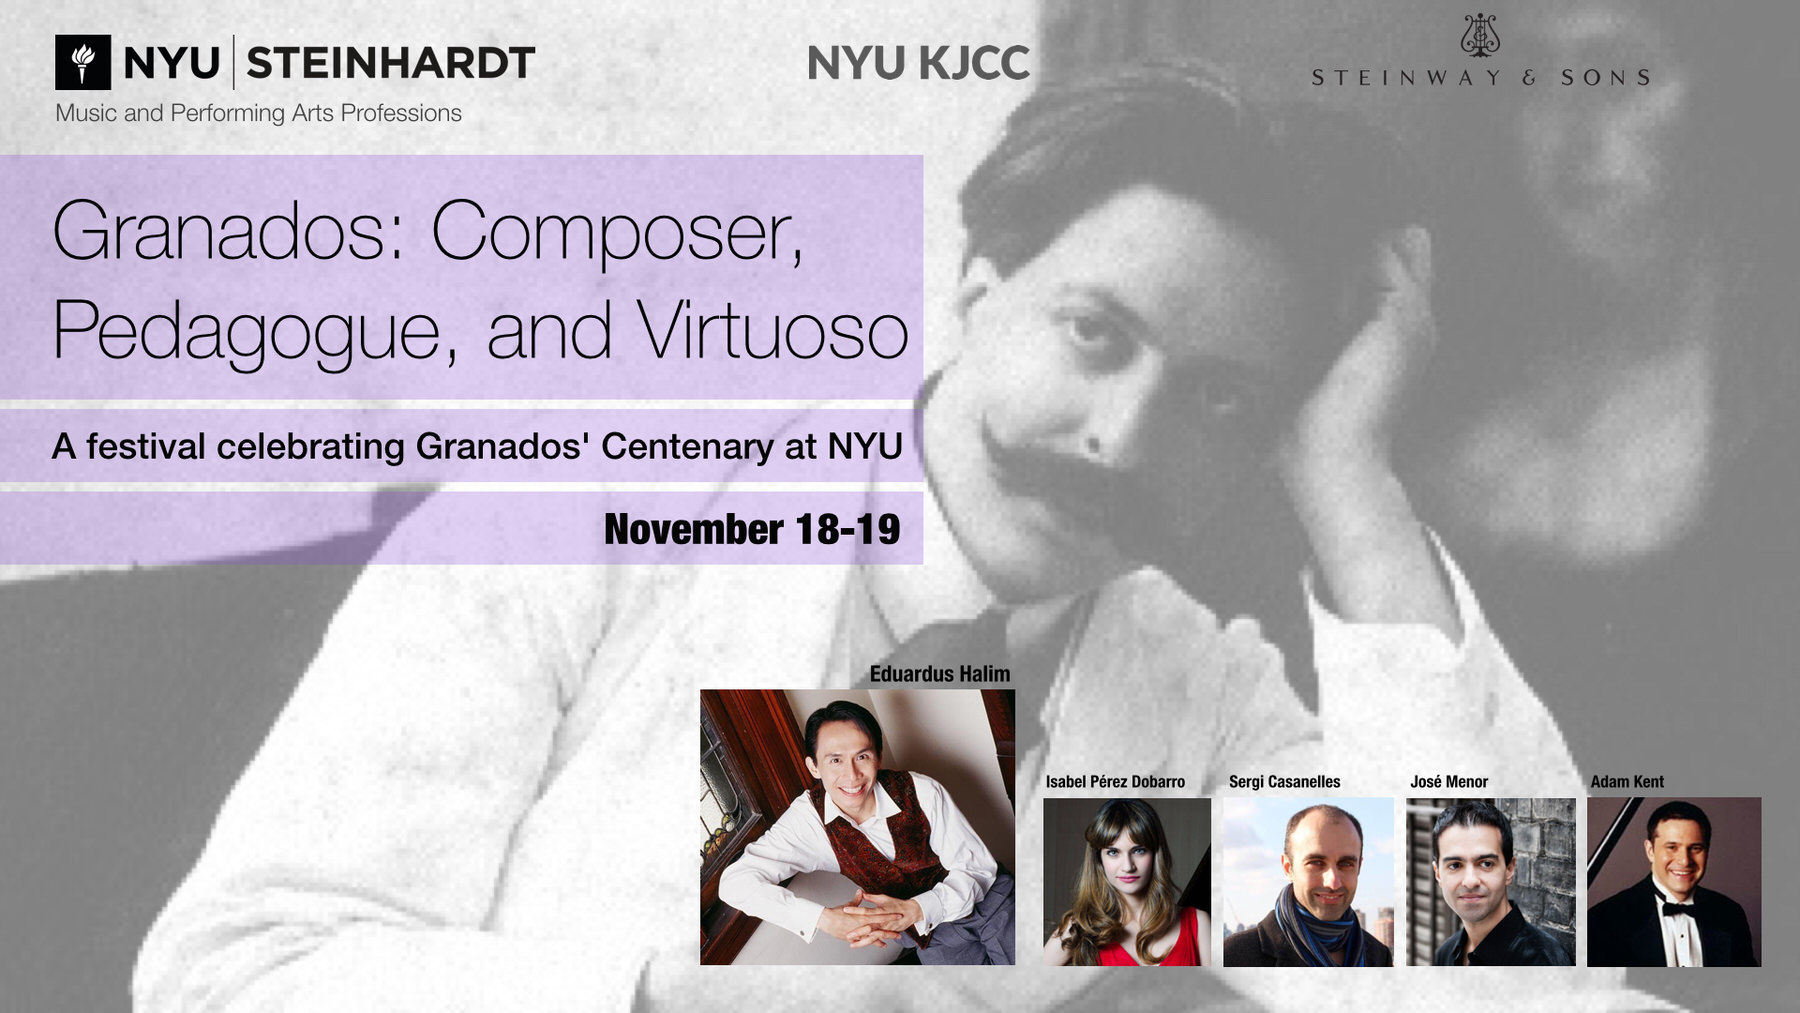 image from Granados at NYU